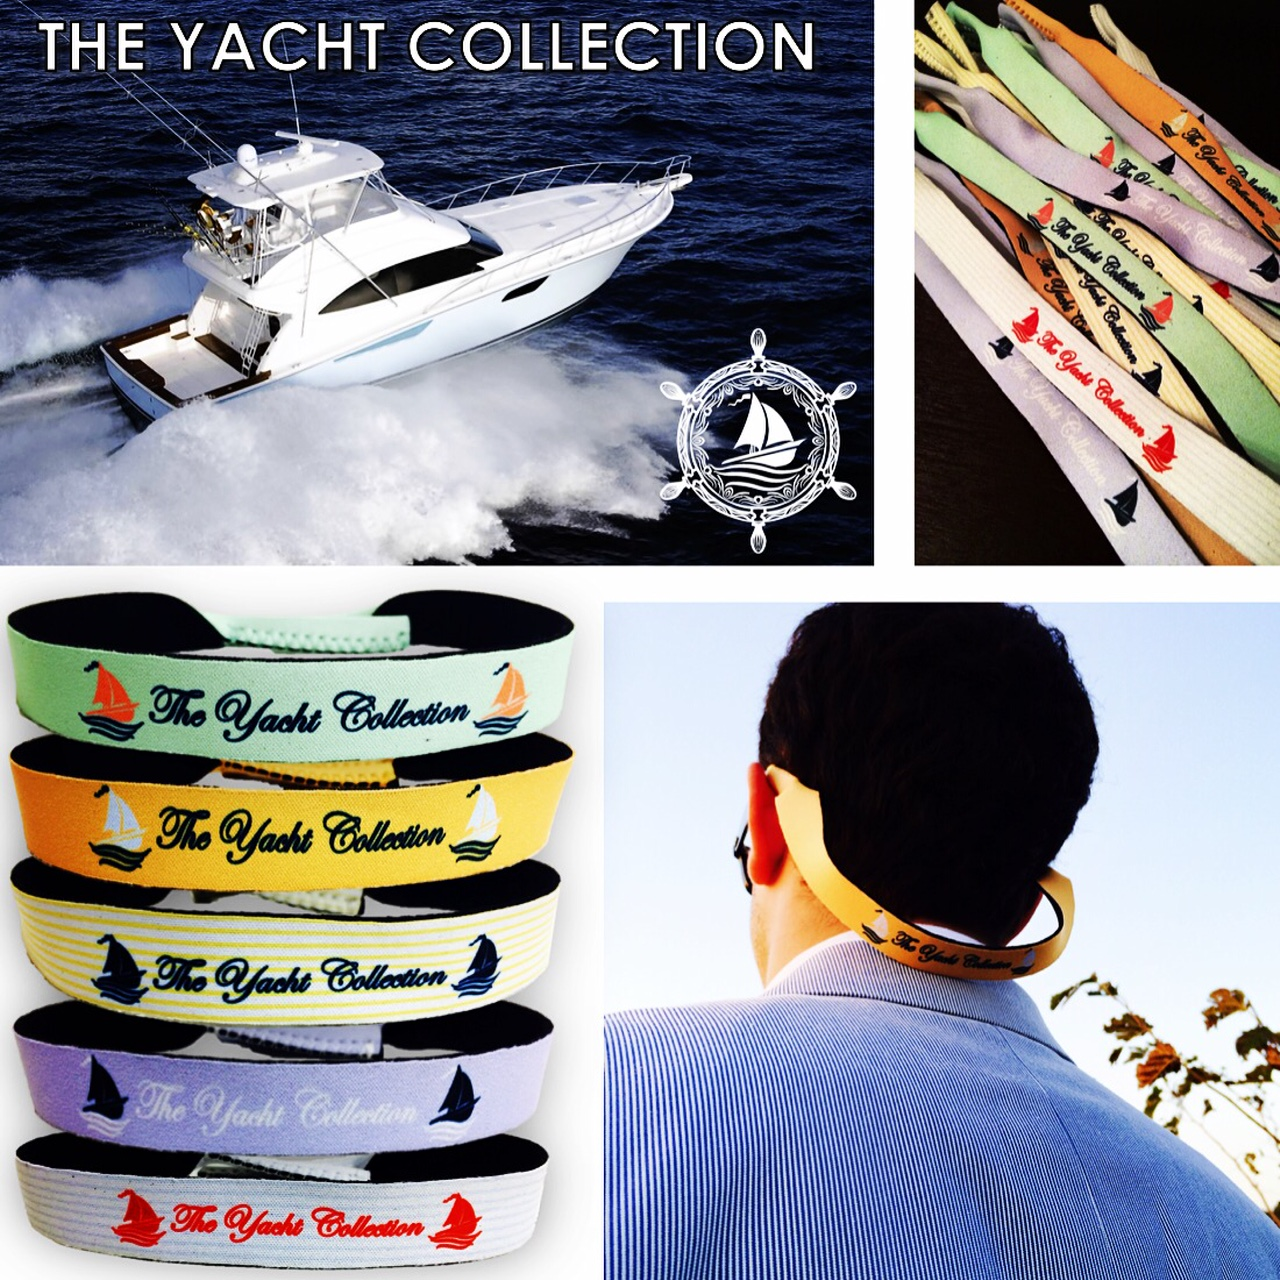 Never lose another pair of sunglasses again! Get your croakies today at www.theyachtcollect.com